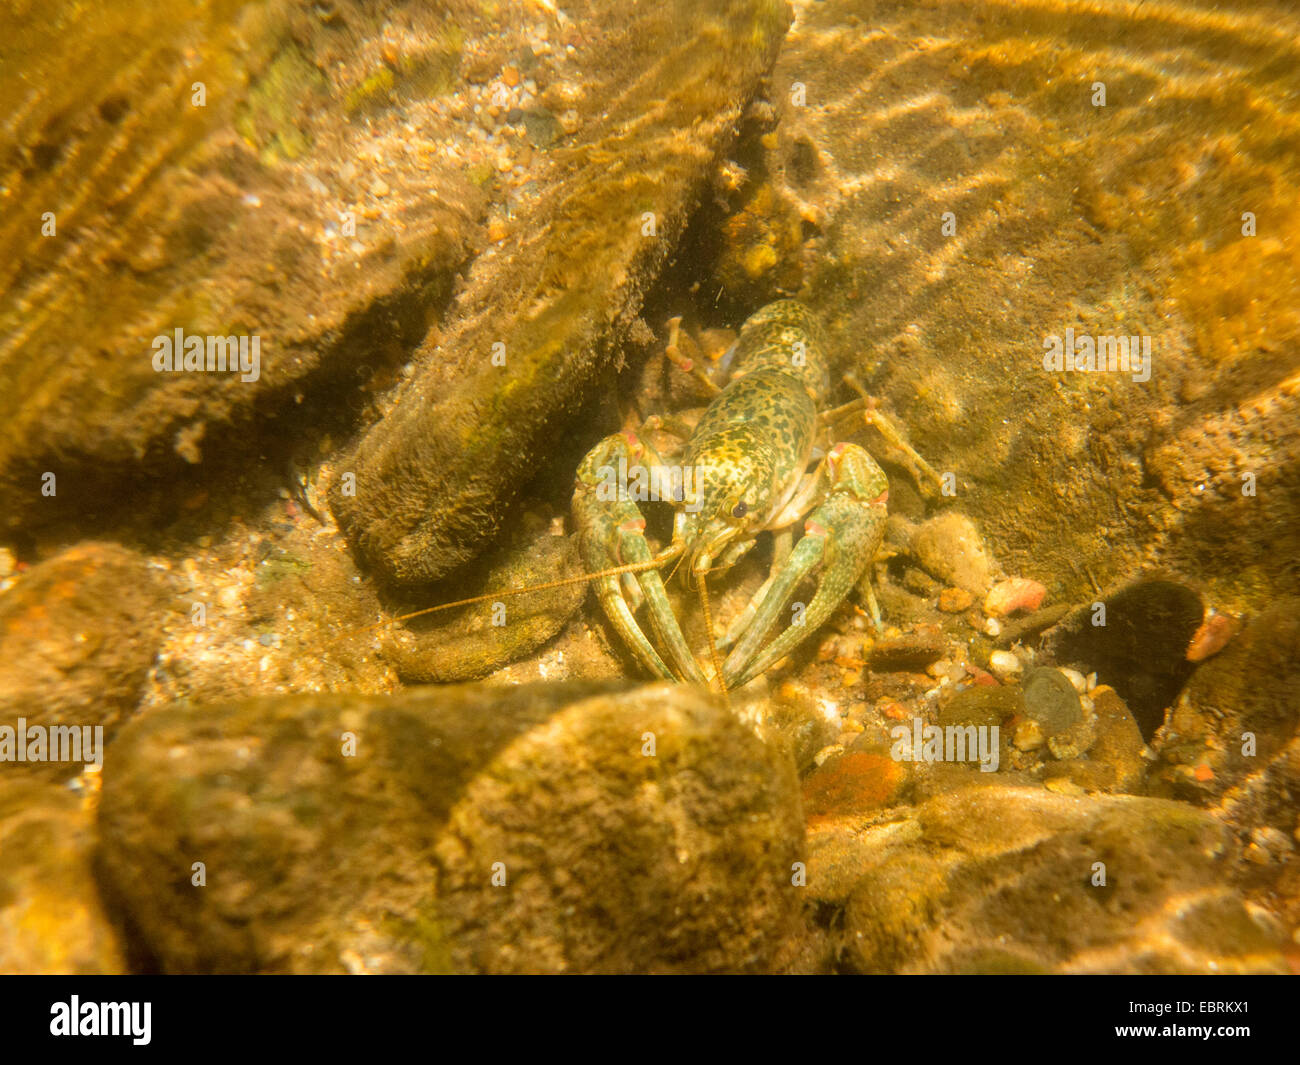 Creole painted crayfish (cf. Orconectes palmeri creolanus), on the river ground, USA, Tennessee, Abrams creek - Stock Image